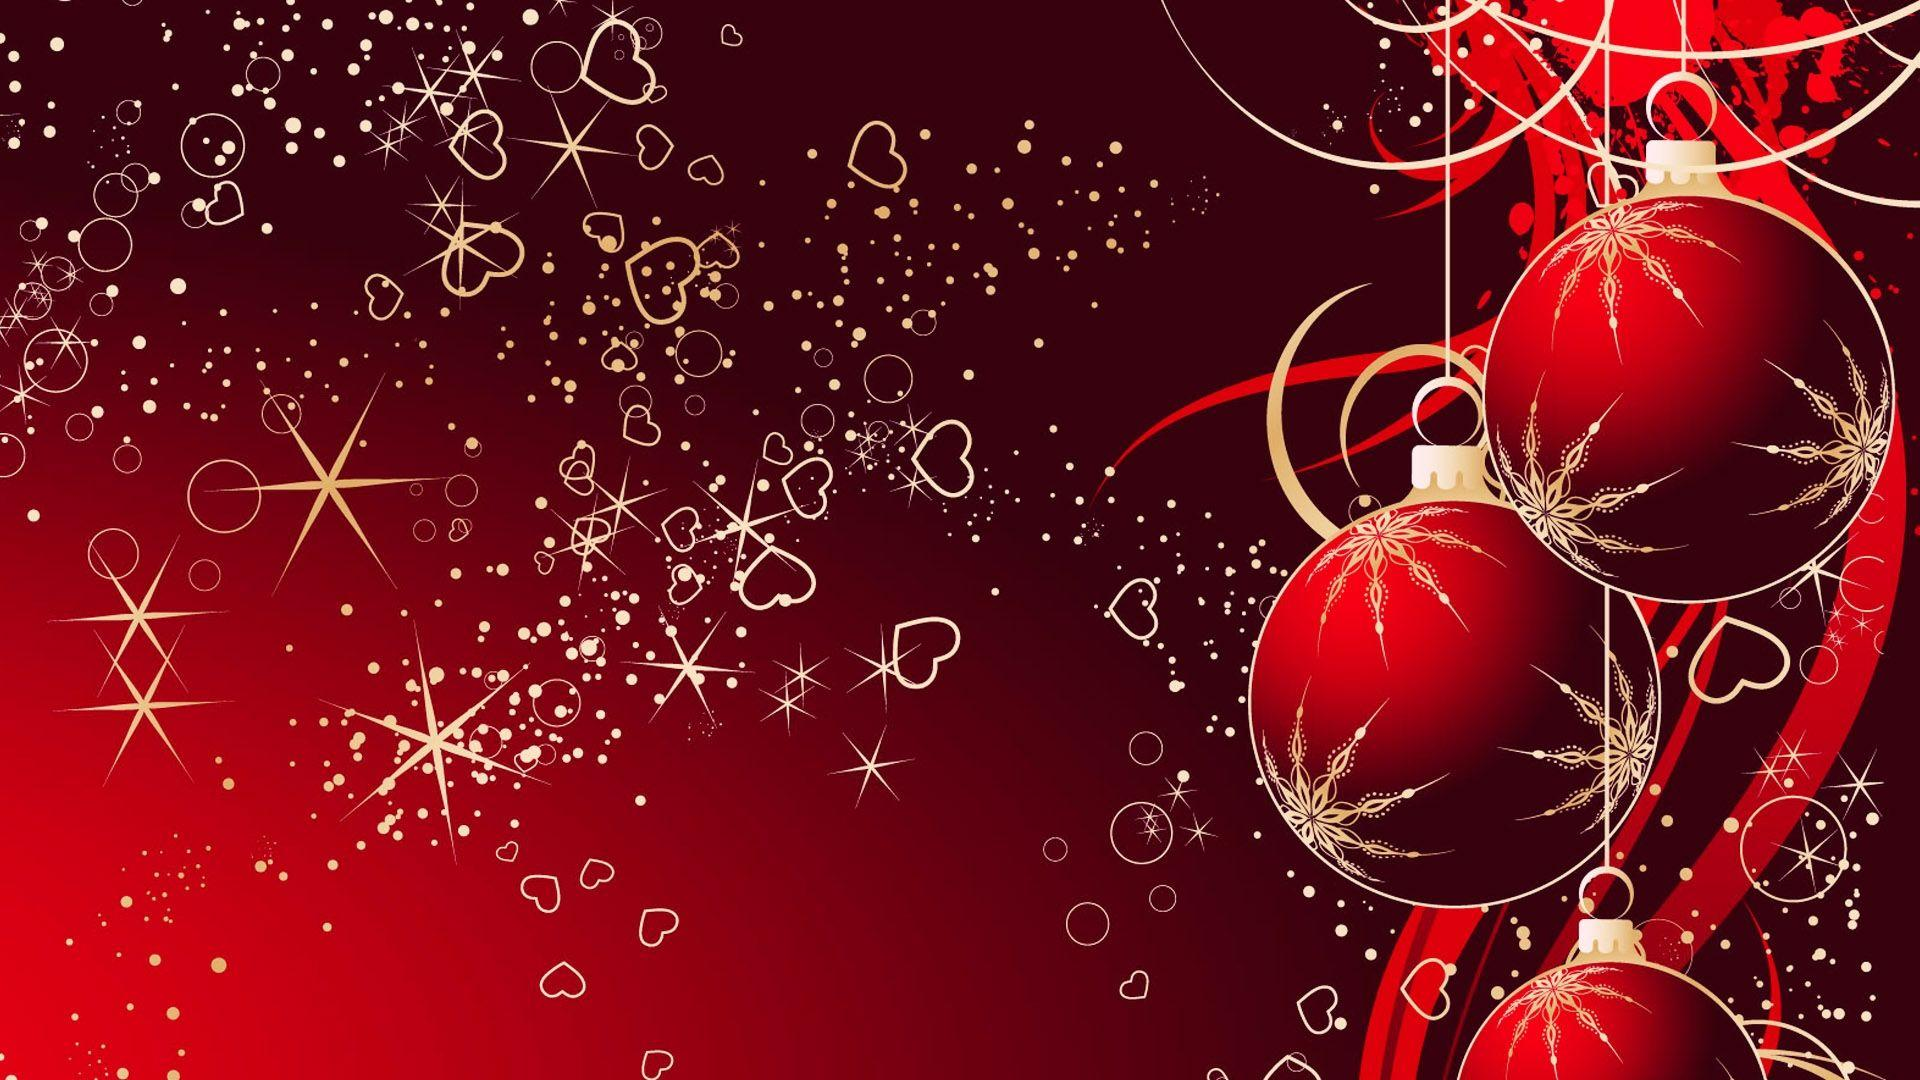 Free Christmas Desktop Backgrounds - Wallpaper Cave